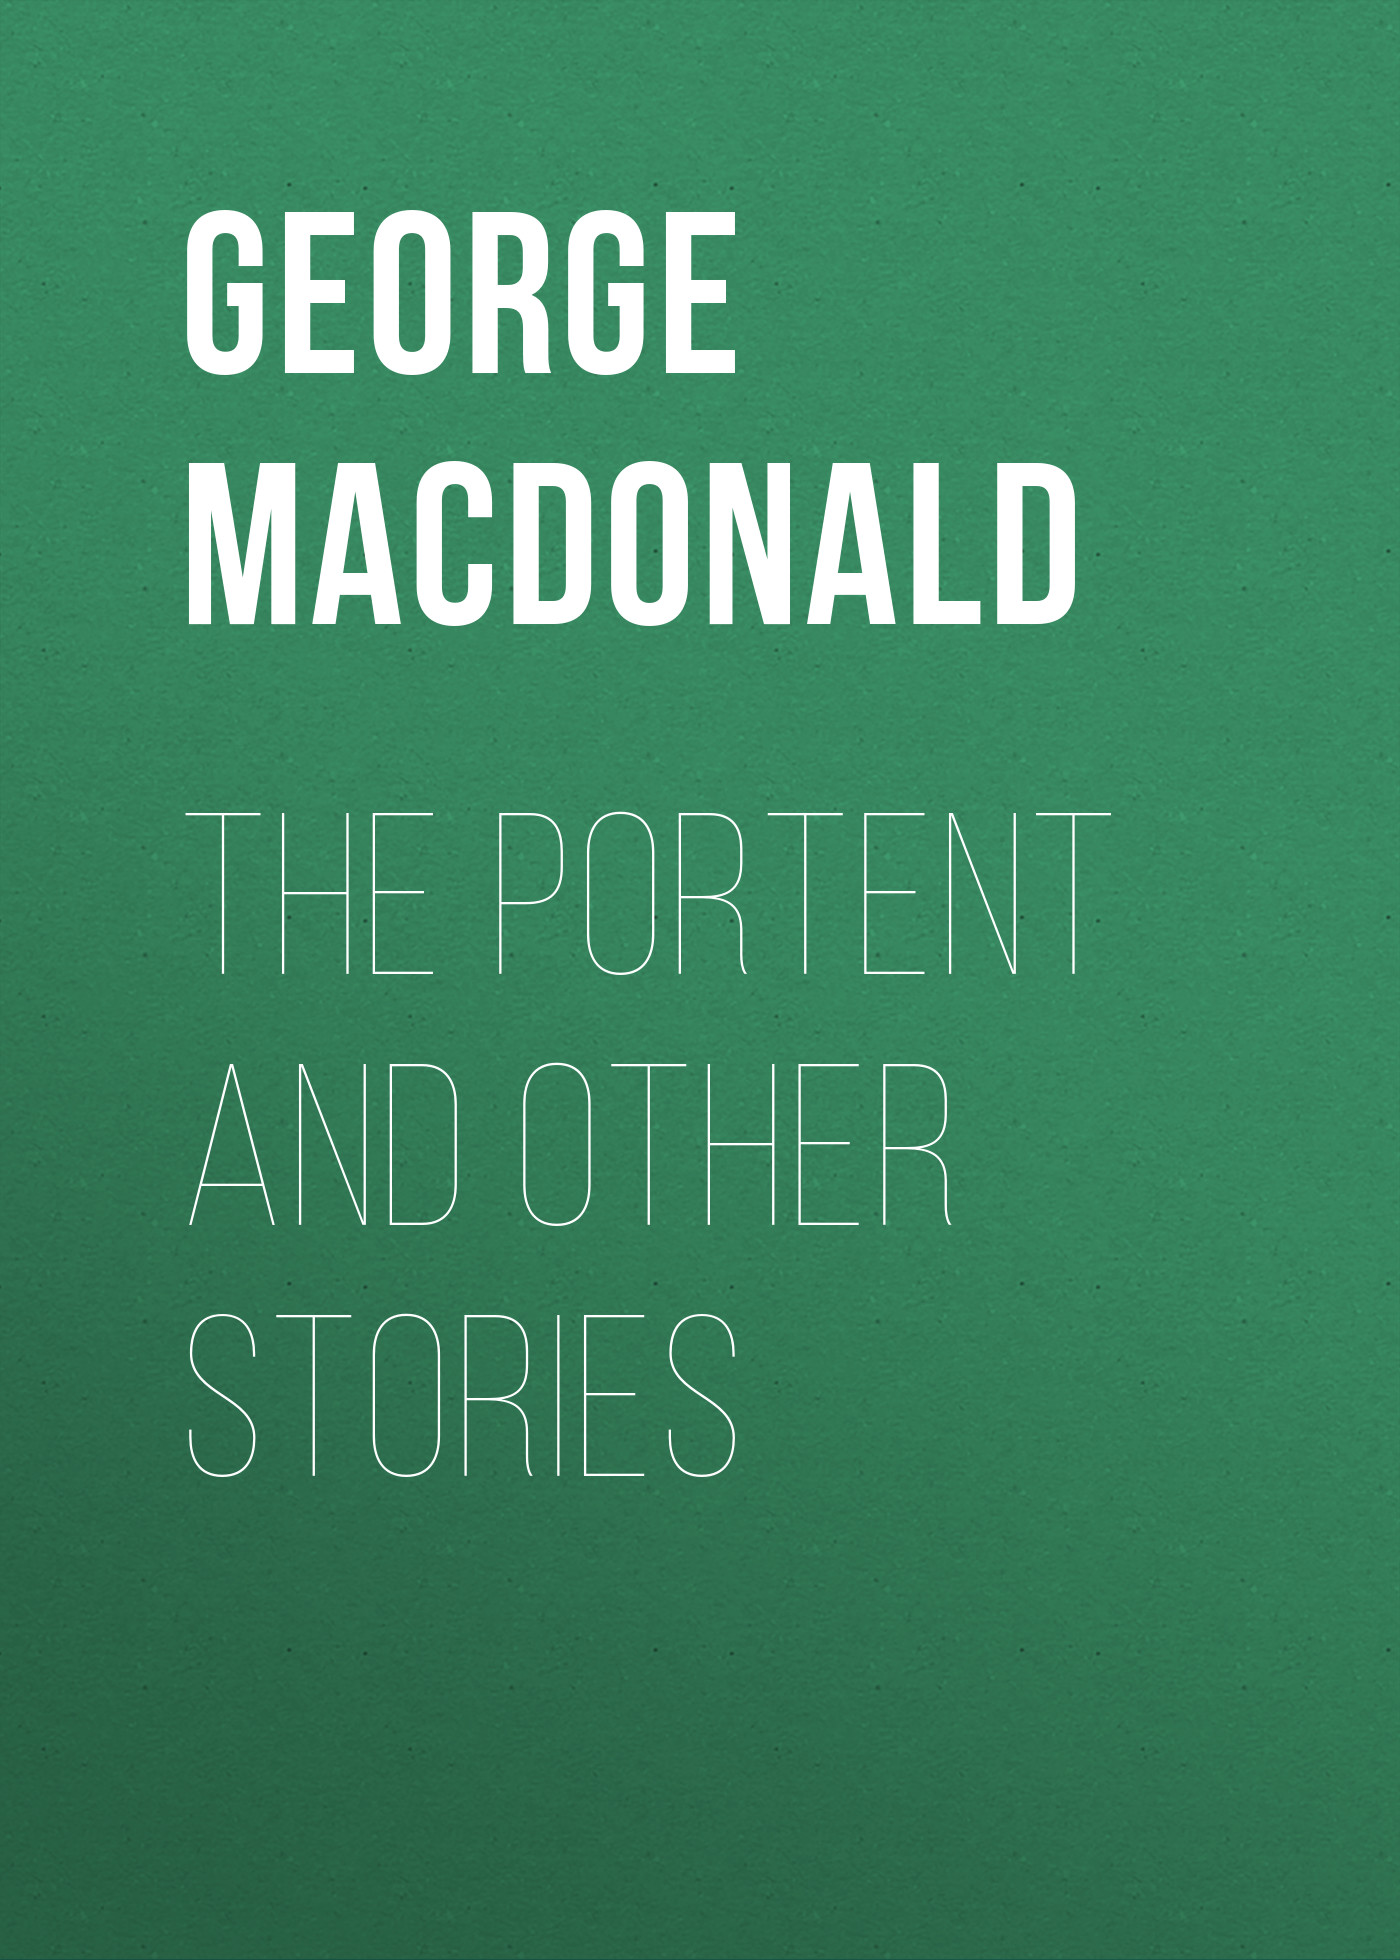 George MacDonald The Portent and Other Stories locked room and other horror stories the